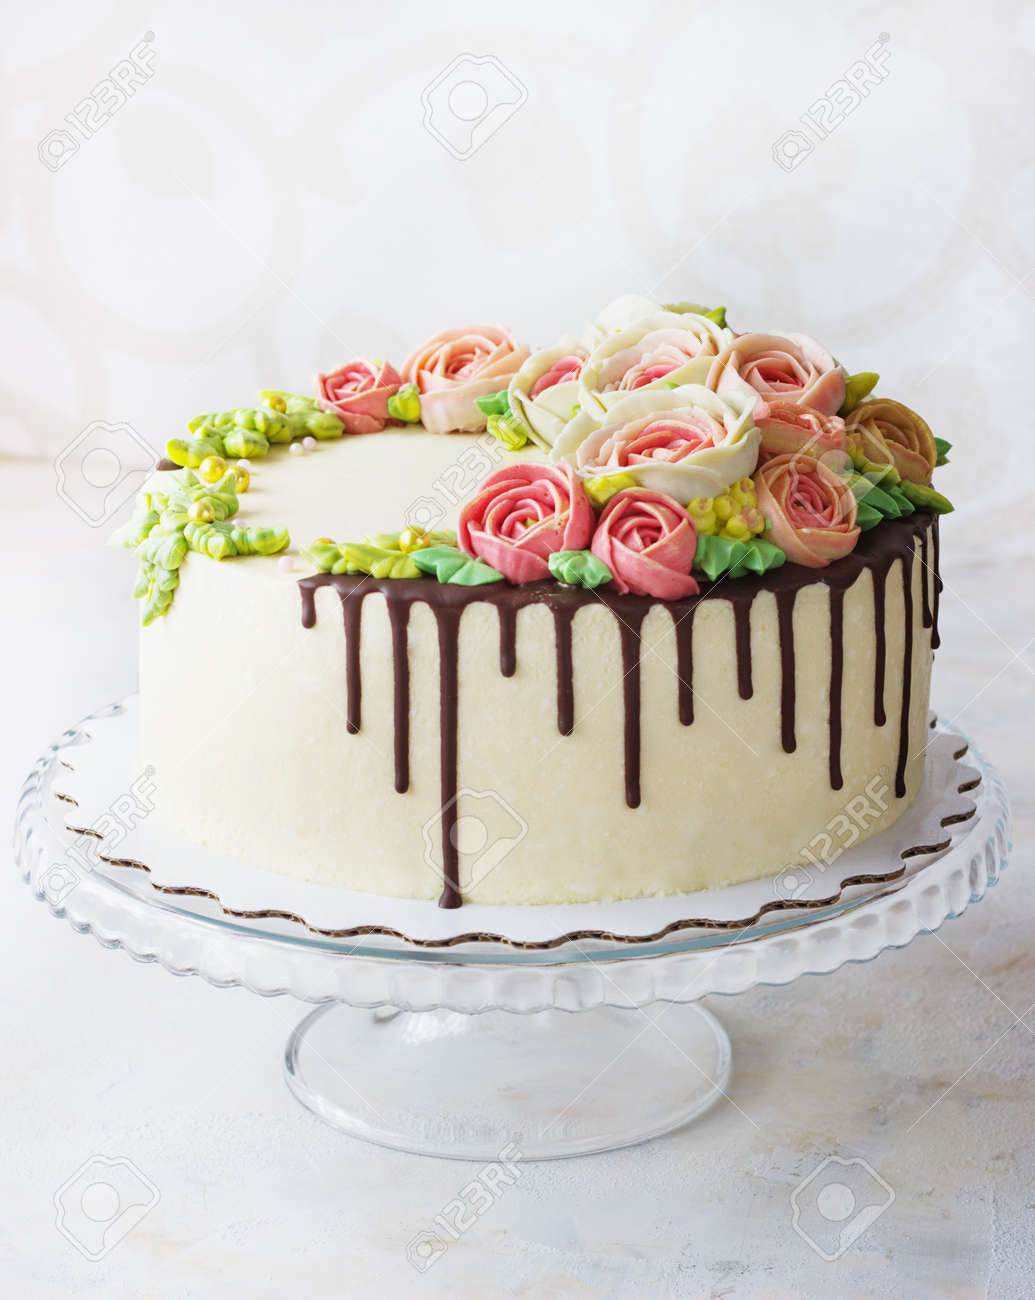 Tremendous Birthday Cake With Flowers Rose On White Background Stock Photo Personalised Birthday Cards Cominlily Jamesorg